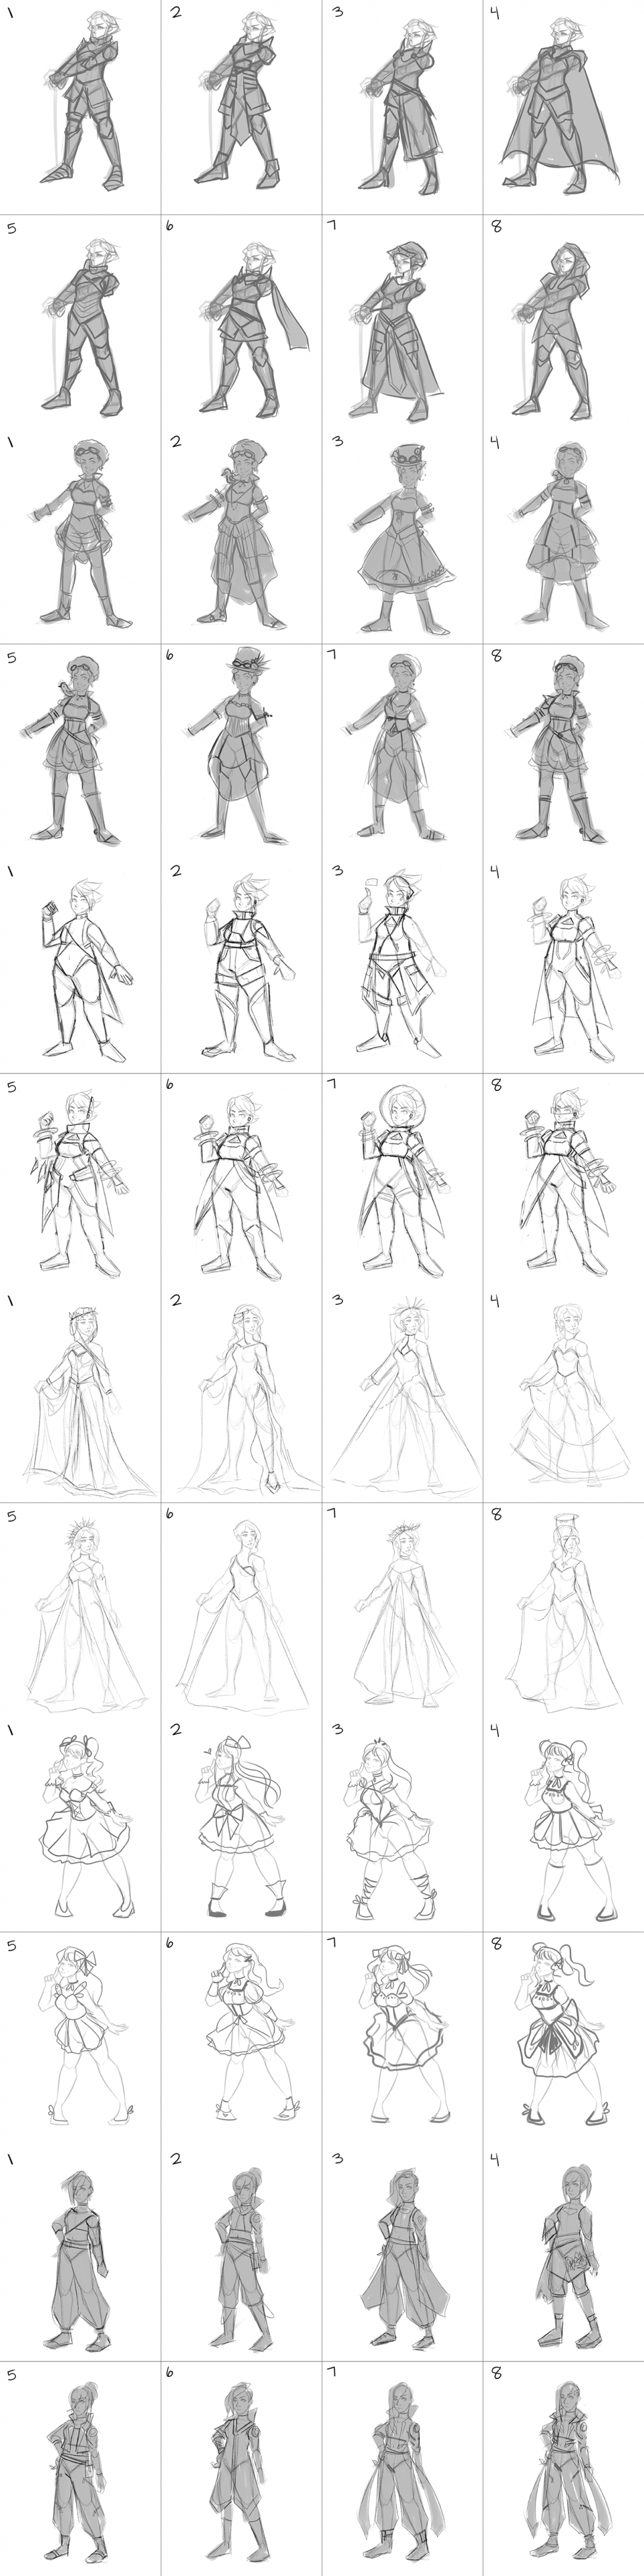 Different character silhouettes for each character based on a specific genre (Medieval/Steampunk/Sci-Fi/Ceremonial/Magical Girl/Cyberpunk)